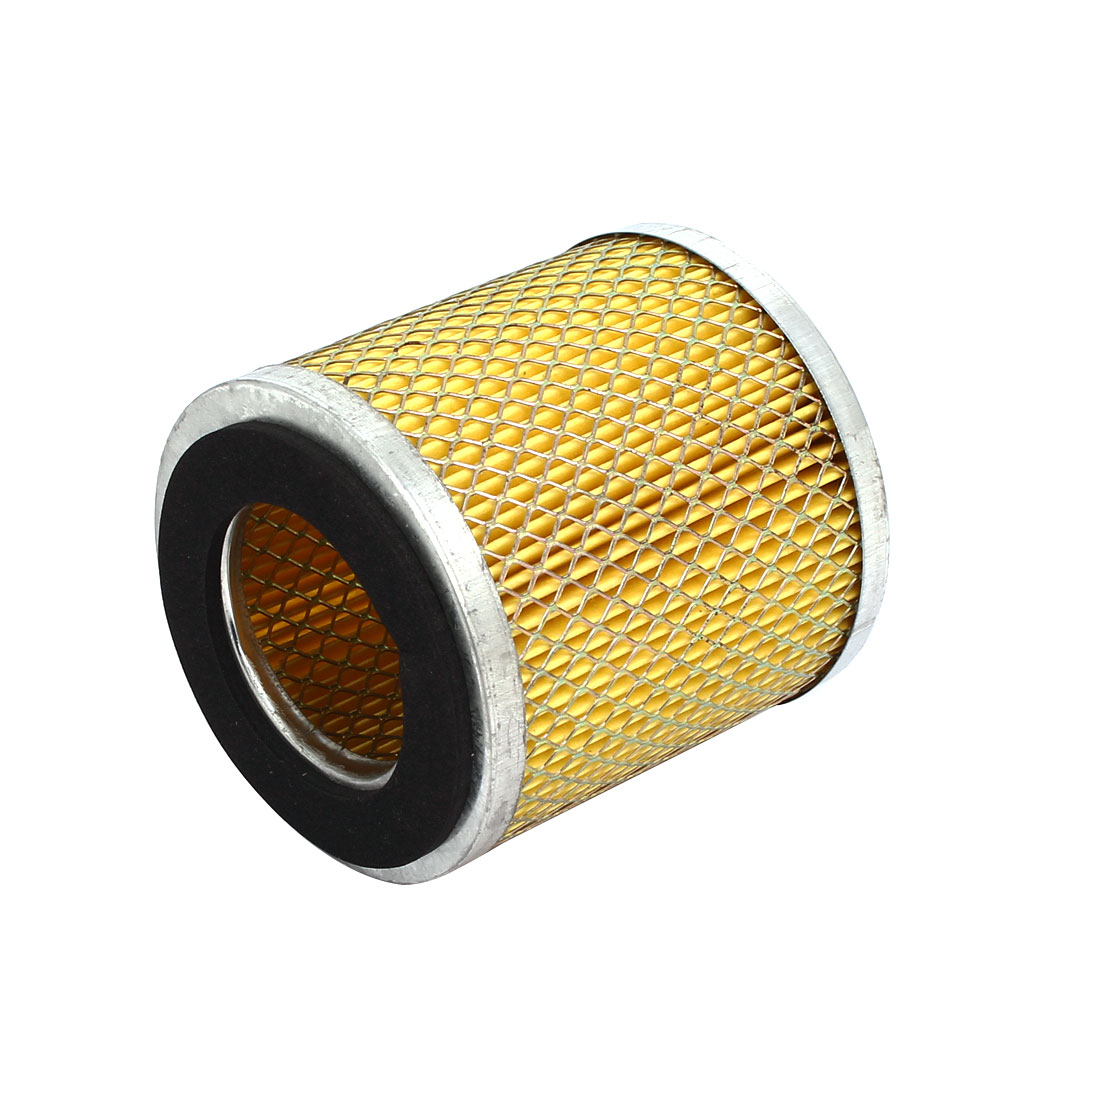 87mmx45mmx92mm Piston Type Air Compressor Element Filter